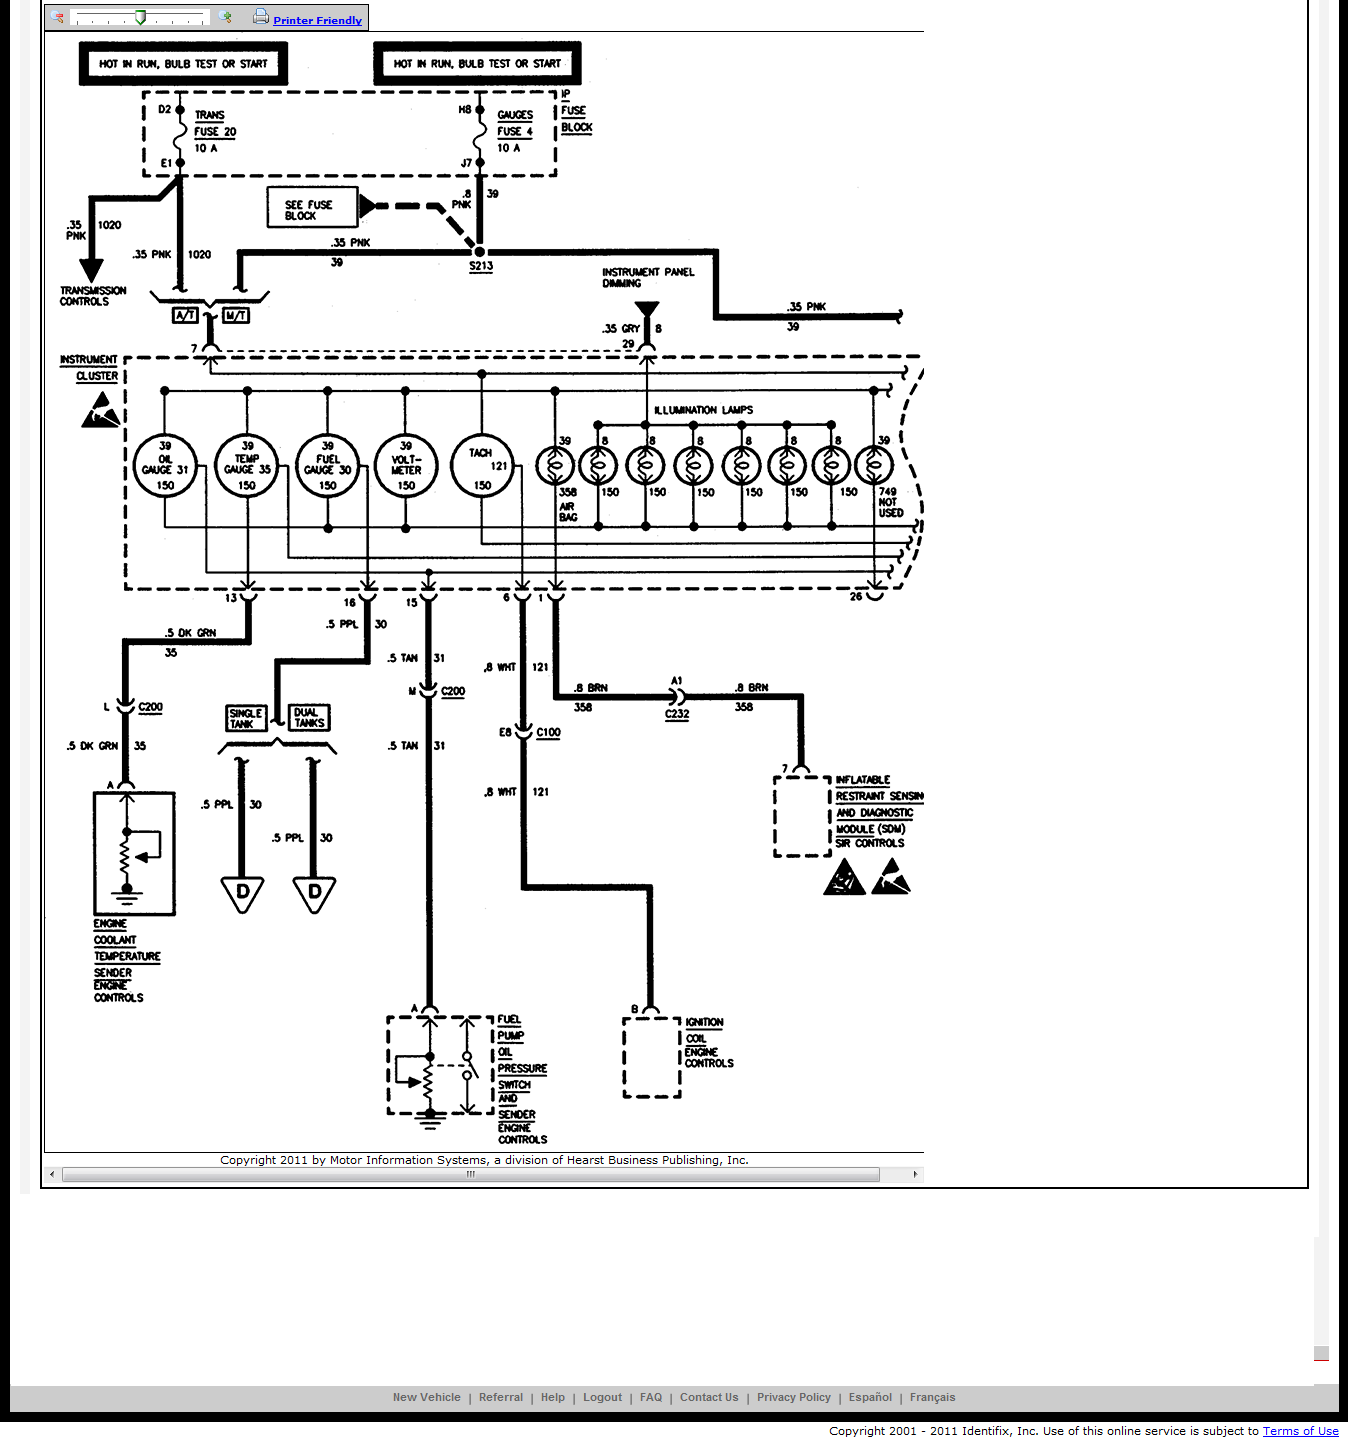 2001 Chevy Tahoe Transmission Wiring Diagram - Wiring Diagram